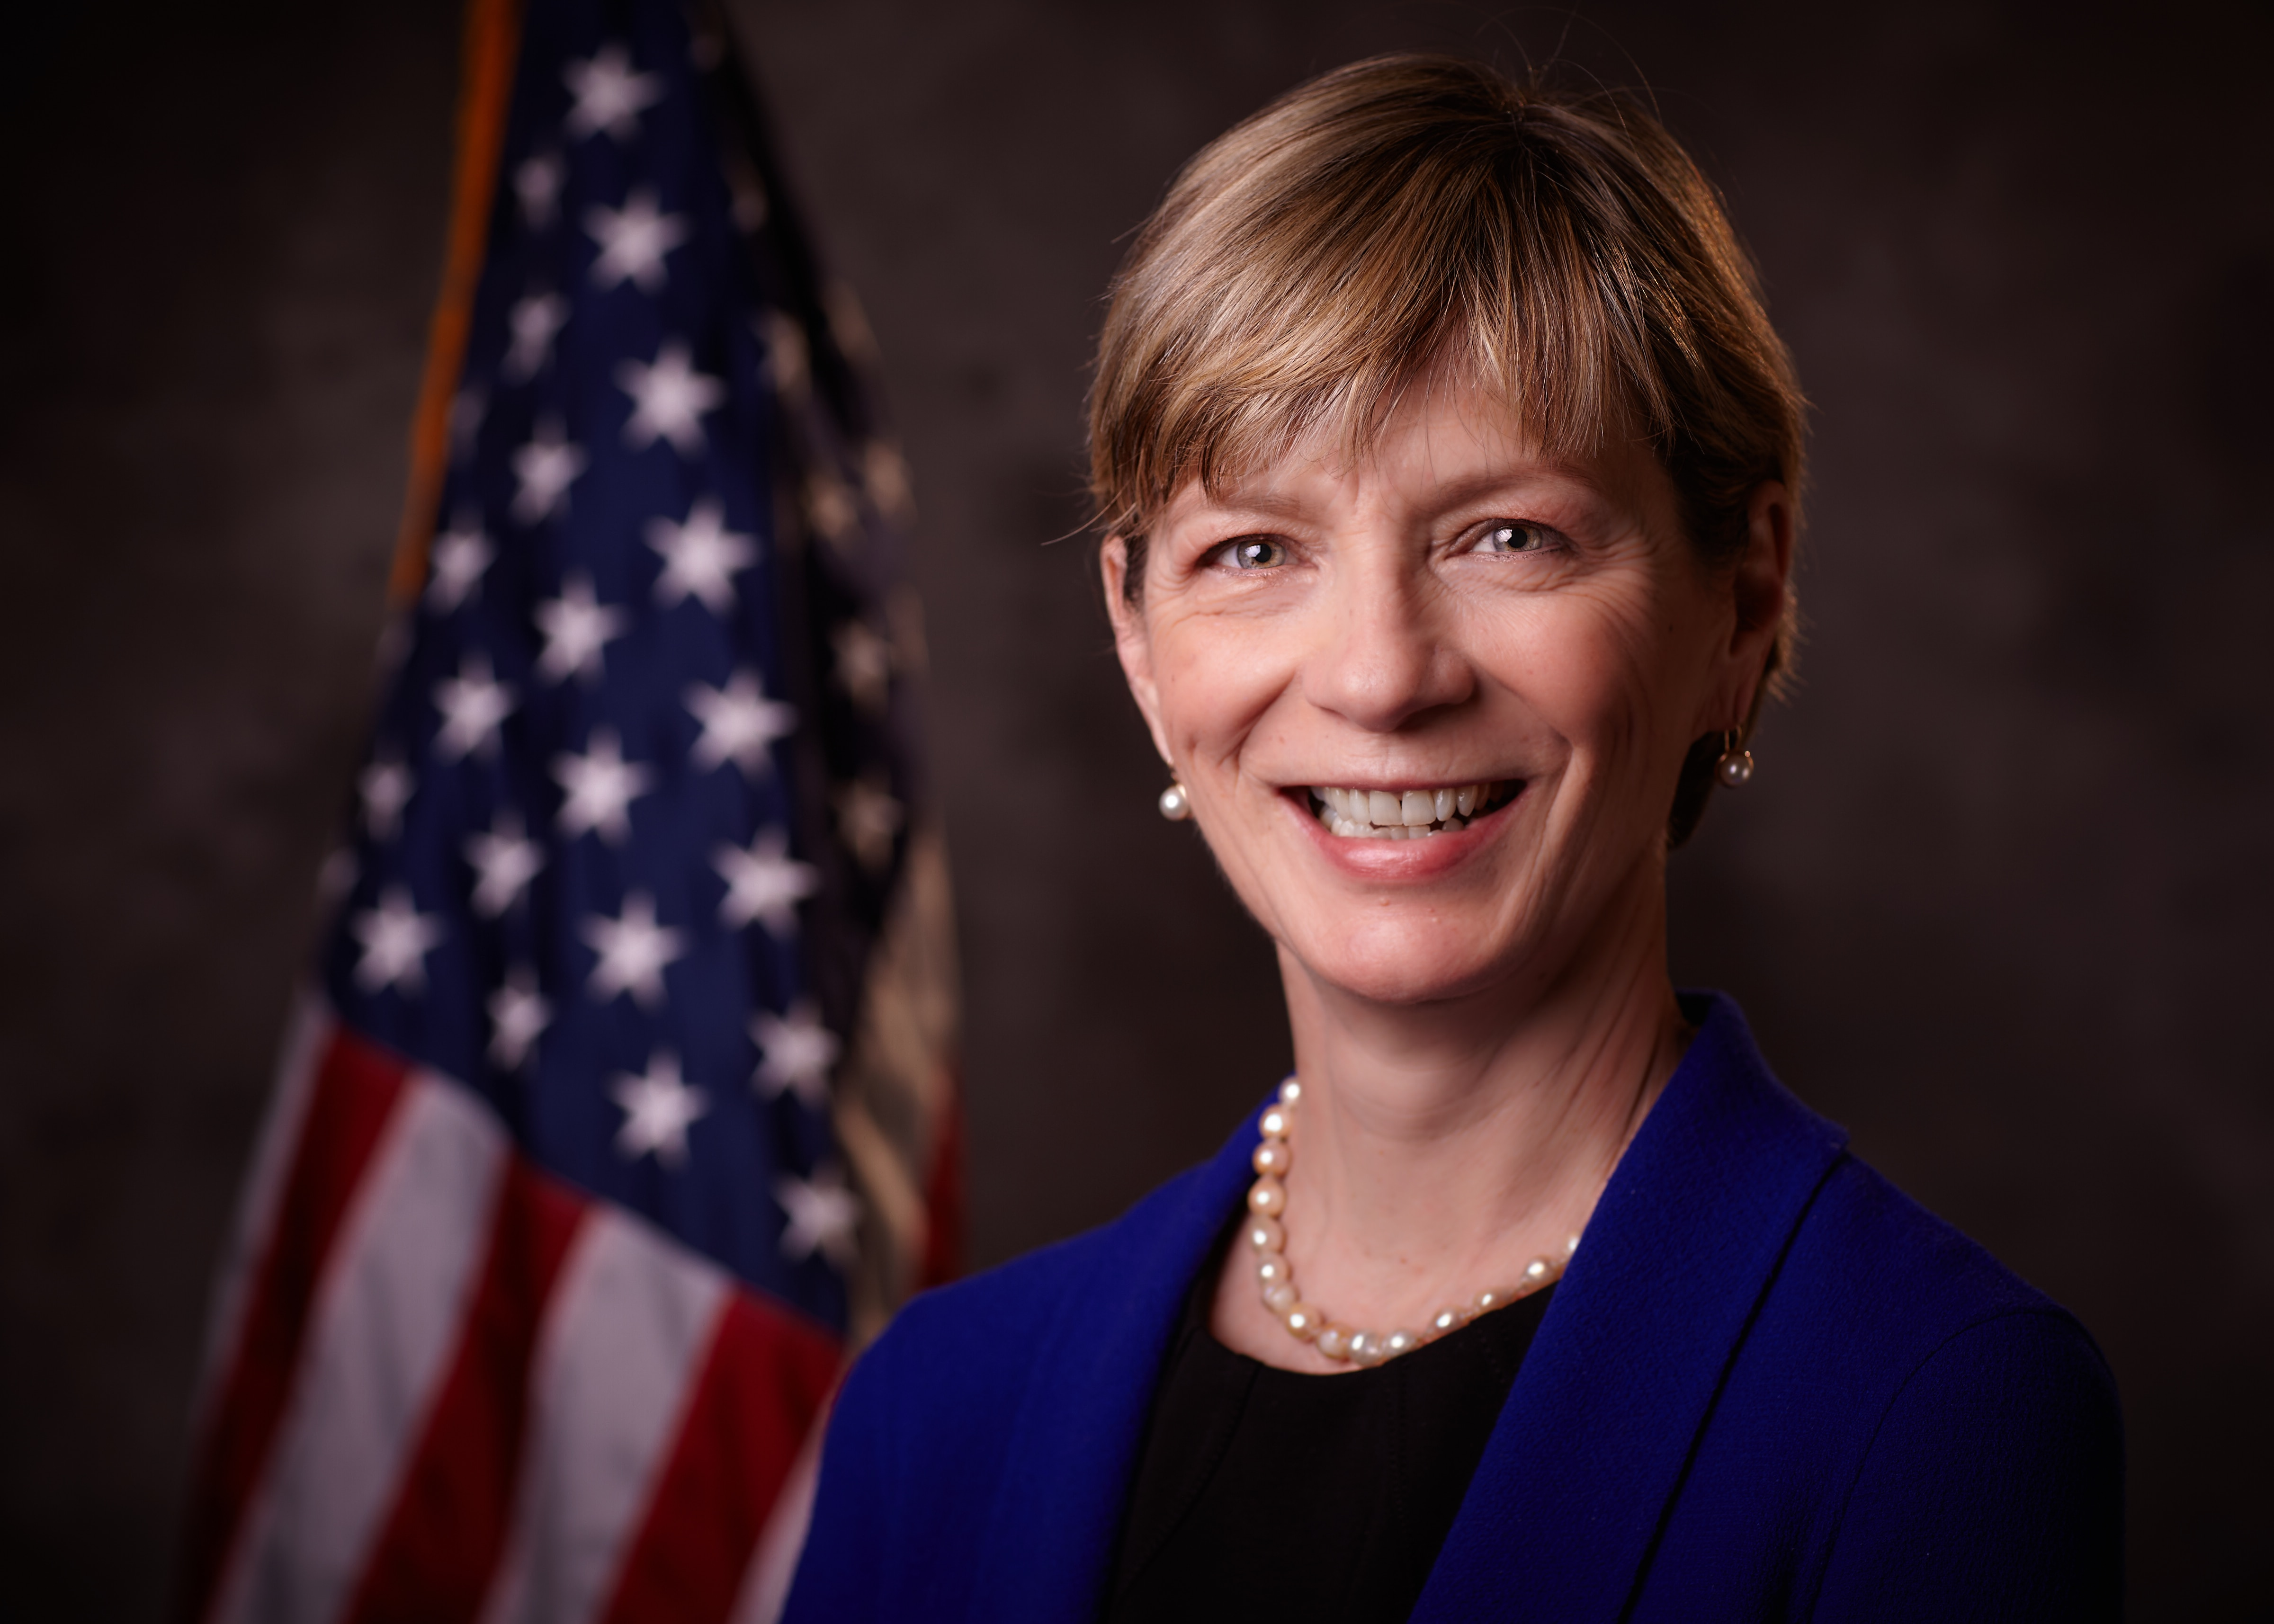 Secretary Marylou Sudders